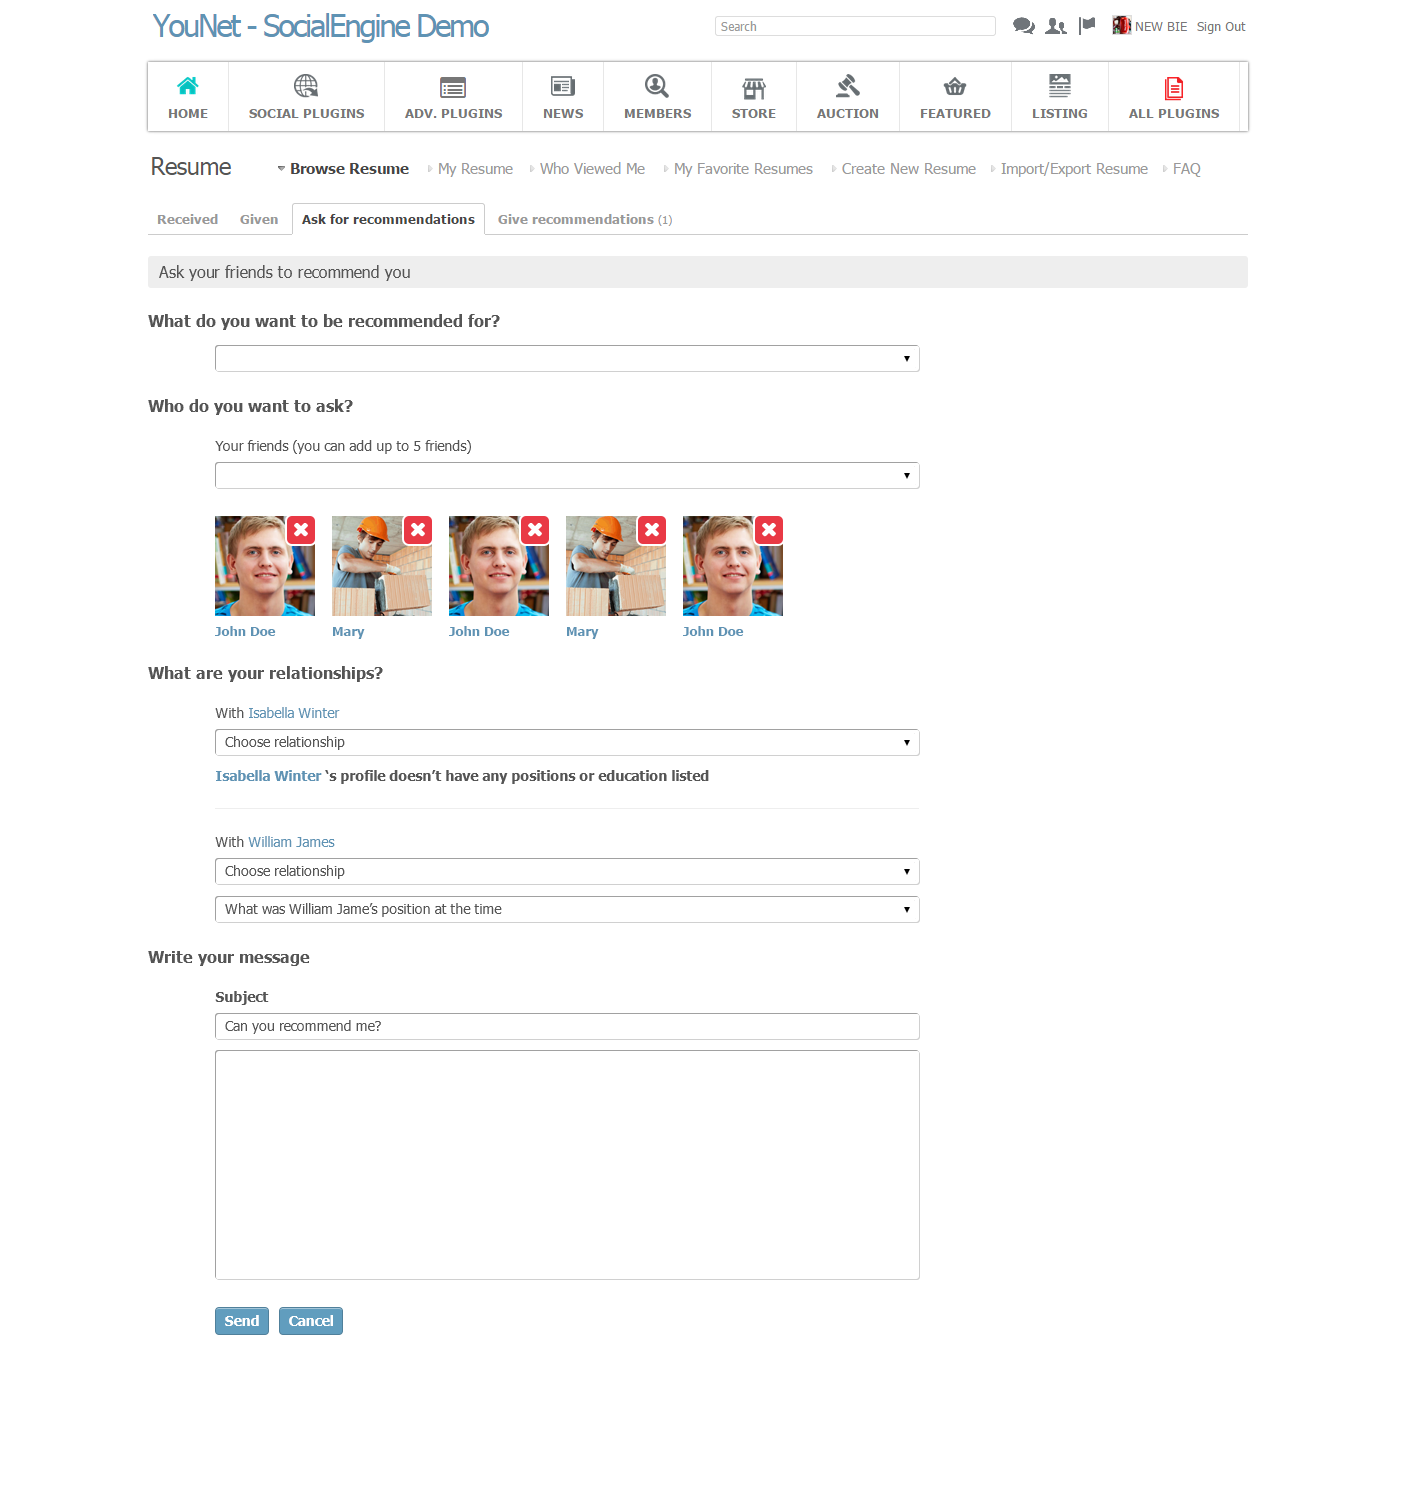 SocialEngine   YouNetCo  Product Recommendation Template